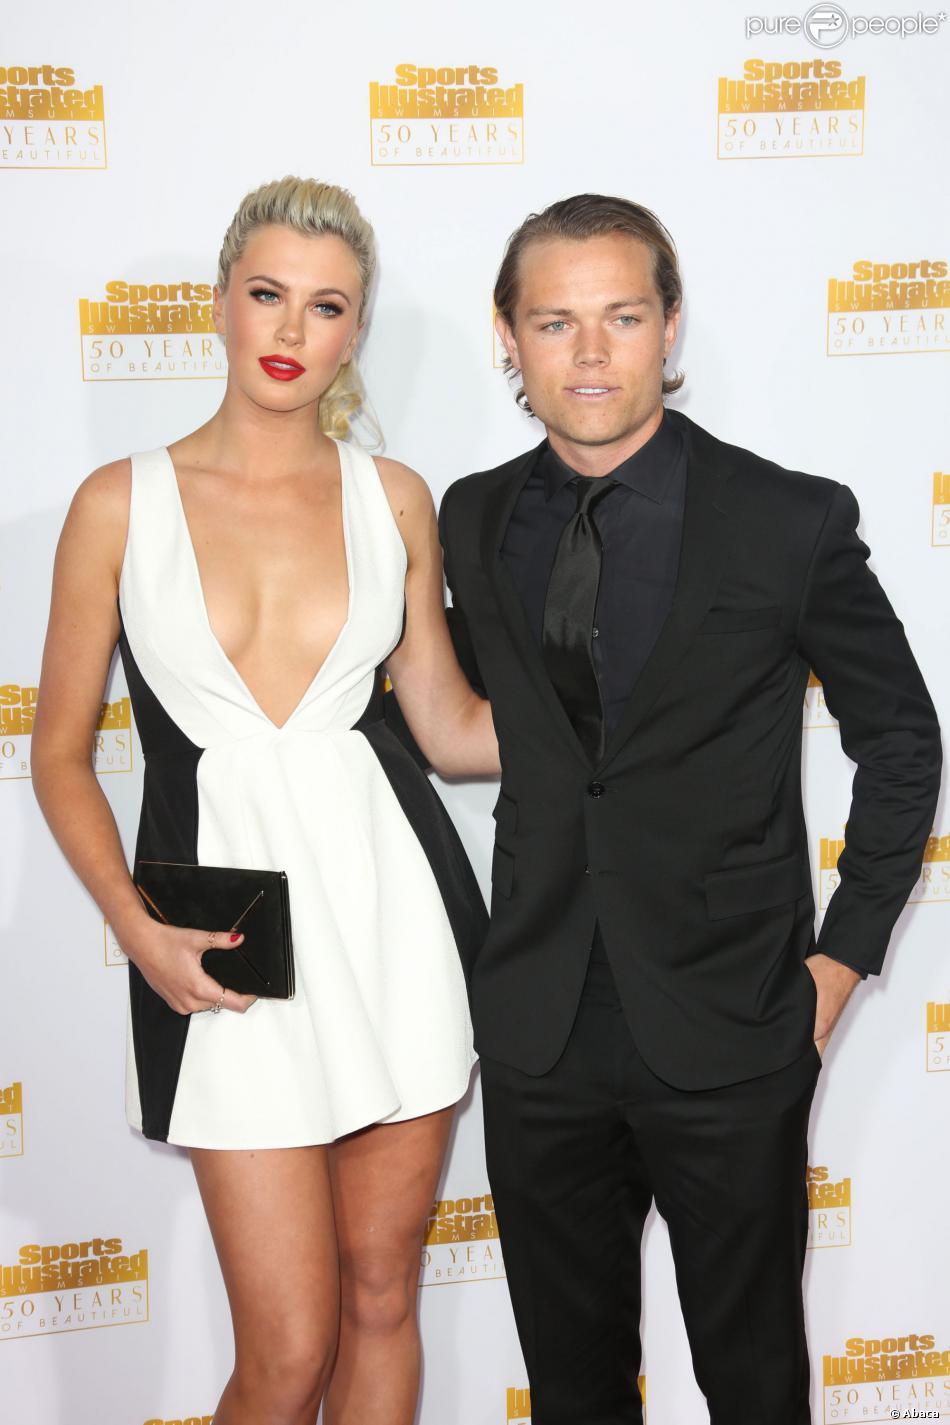 Ireland Baldwin et son petit ami Slater Trout à la soirée anniversaire des 50 ans du magazine Sports Illustrated Swimsuit Issue à Los Angeles, le 14 janvier 2014.